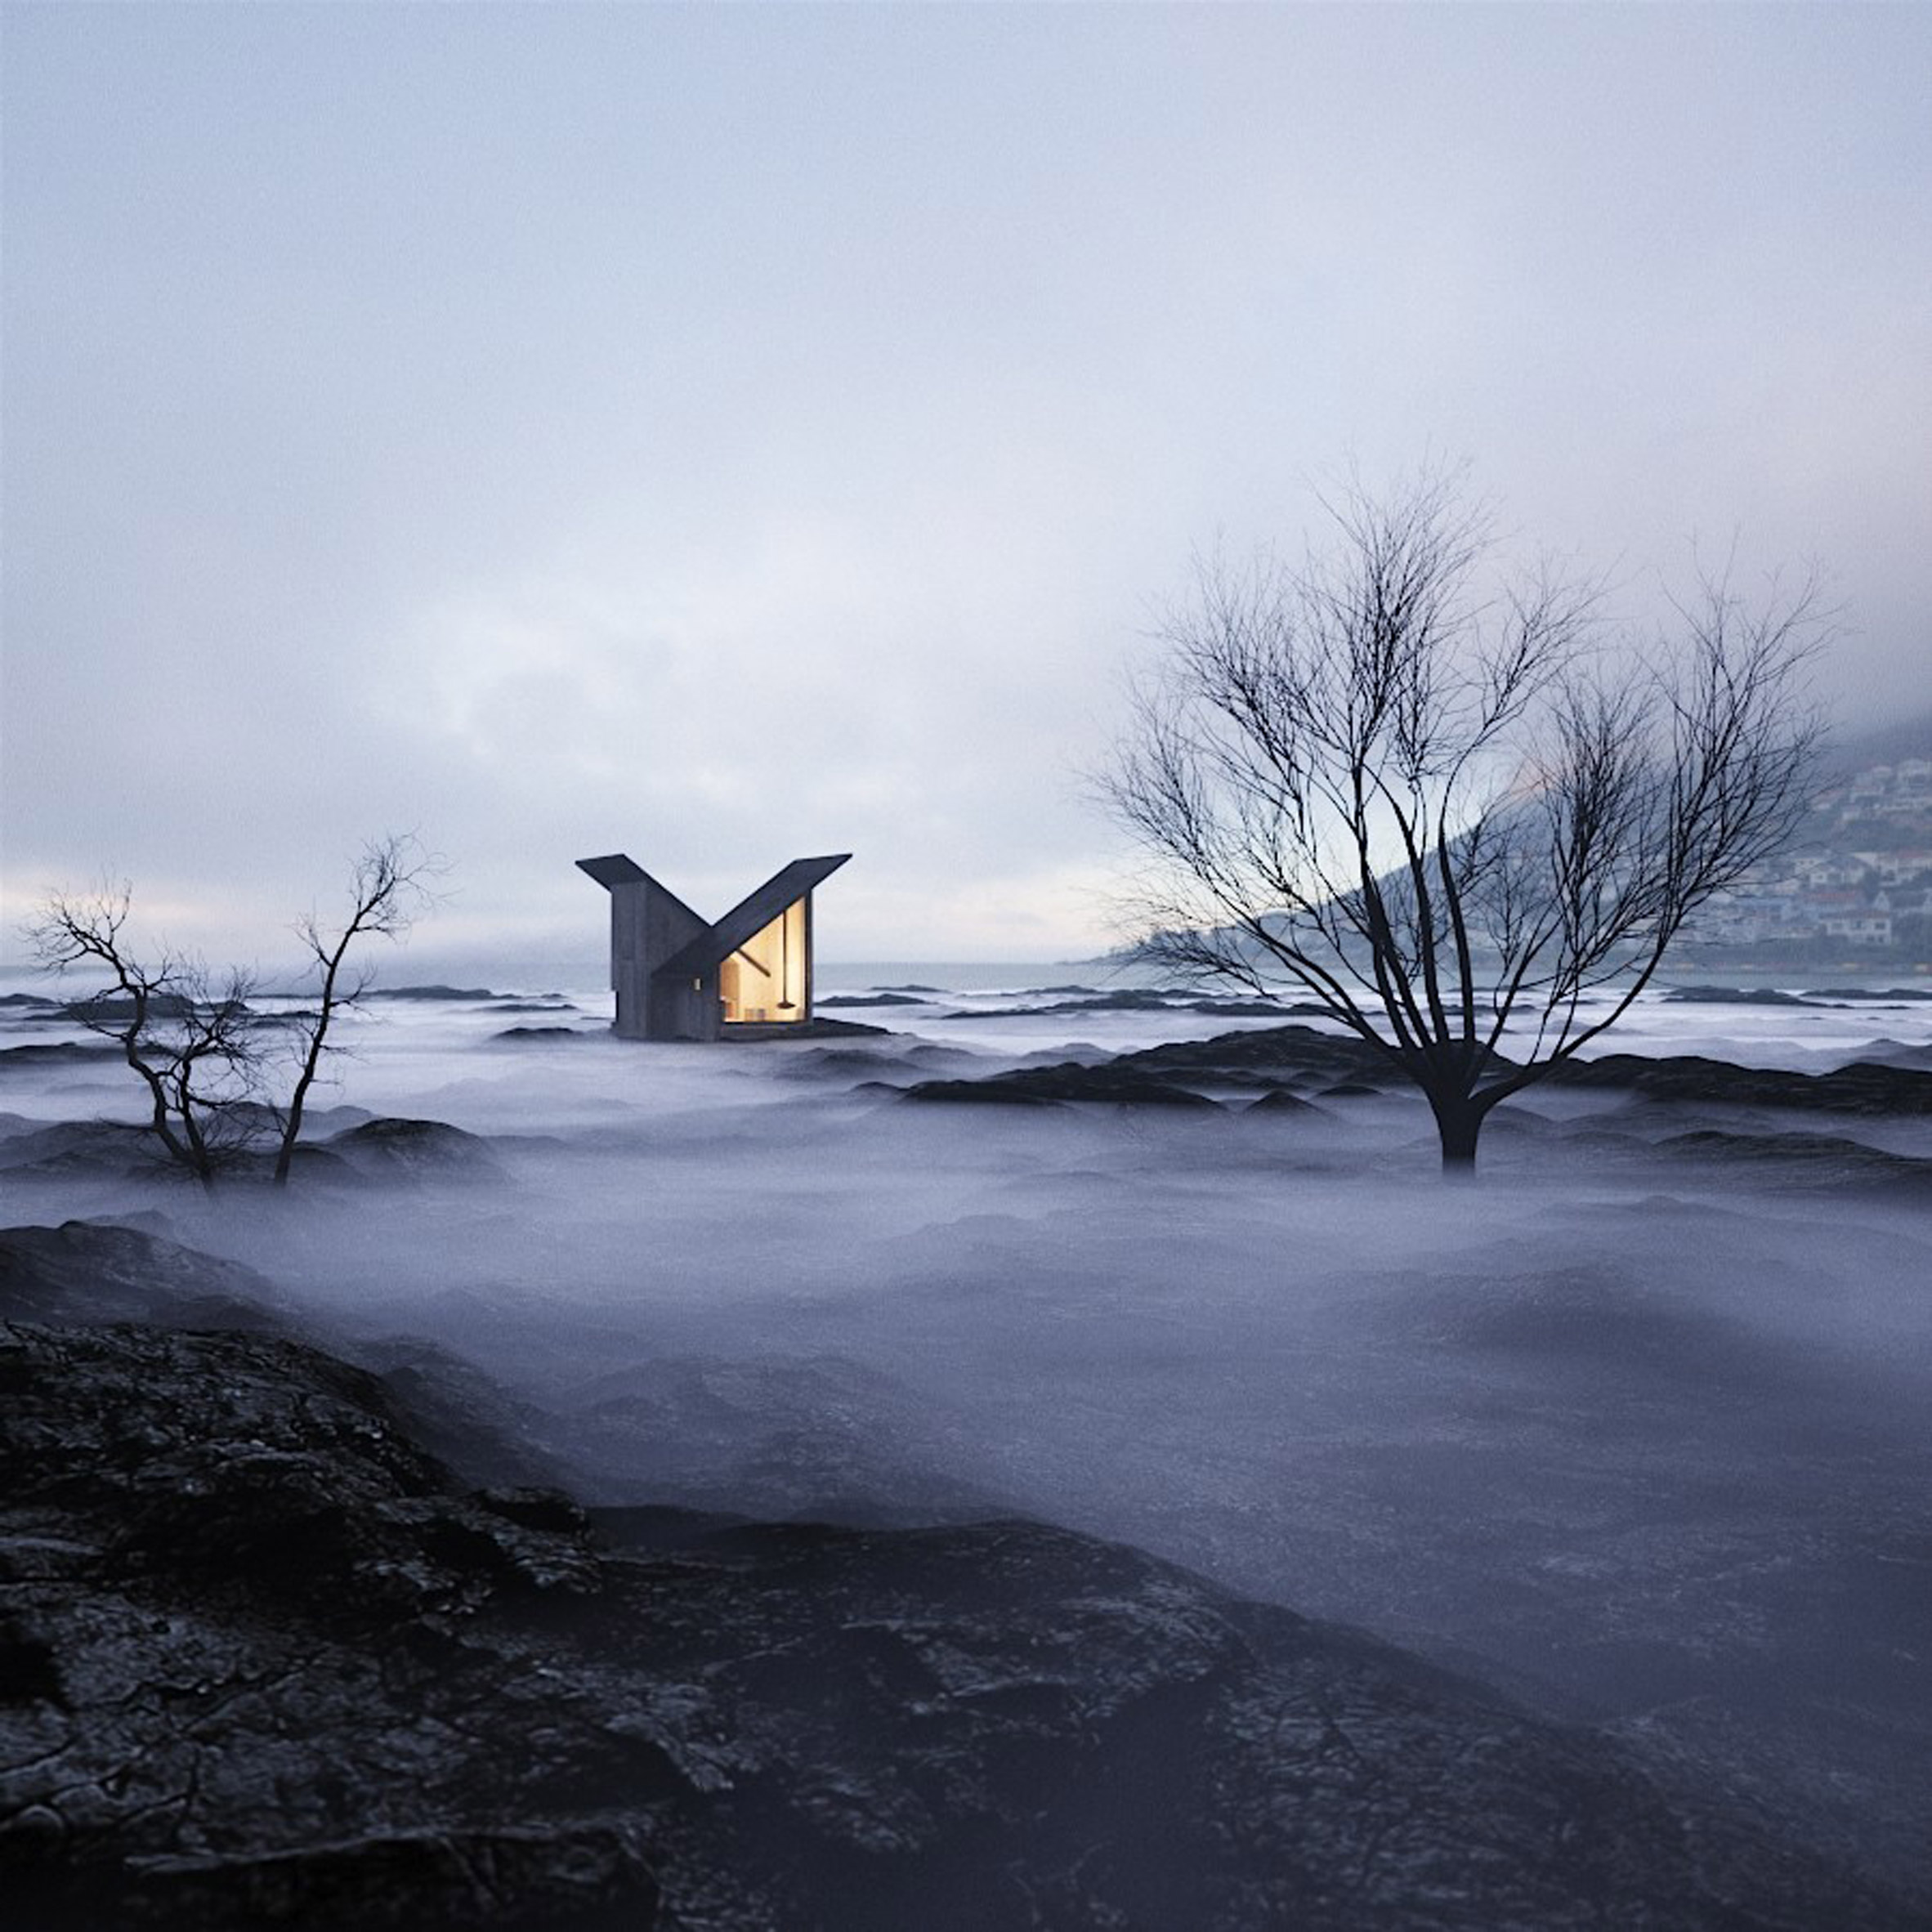 Mountain Refuge by Massimo Gnocchi and Paolo Danesi